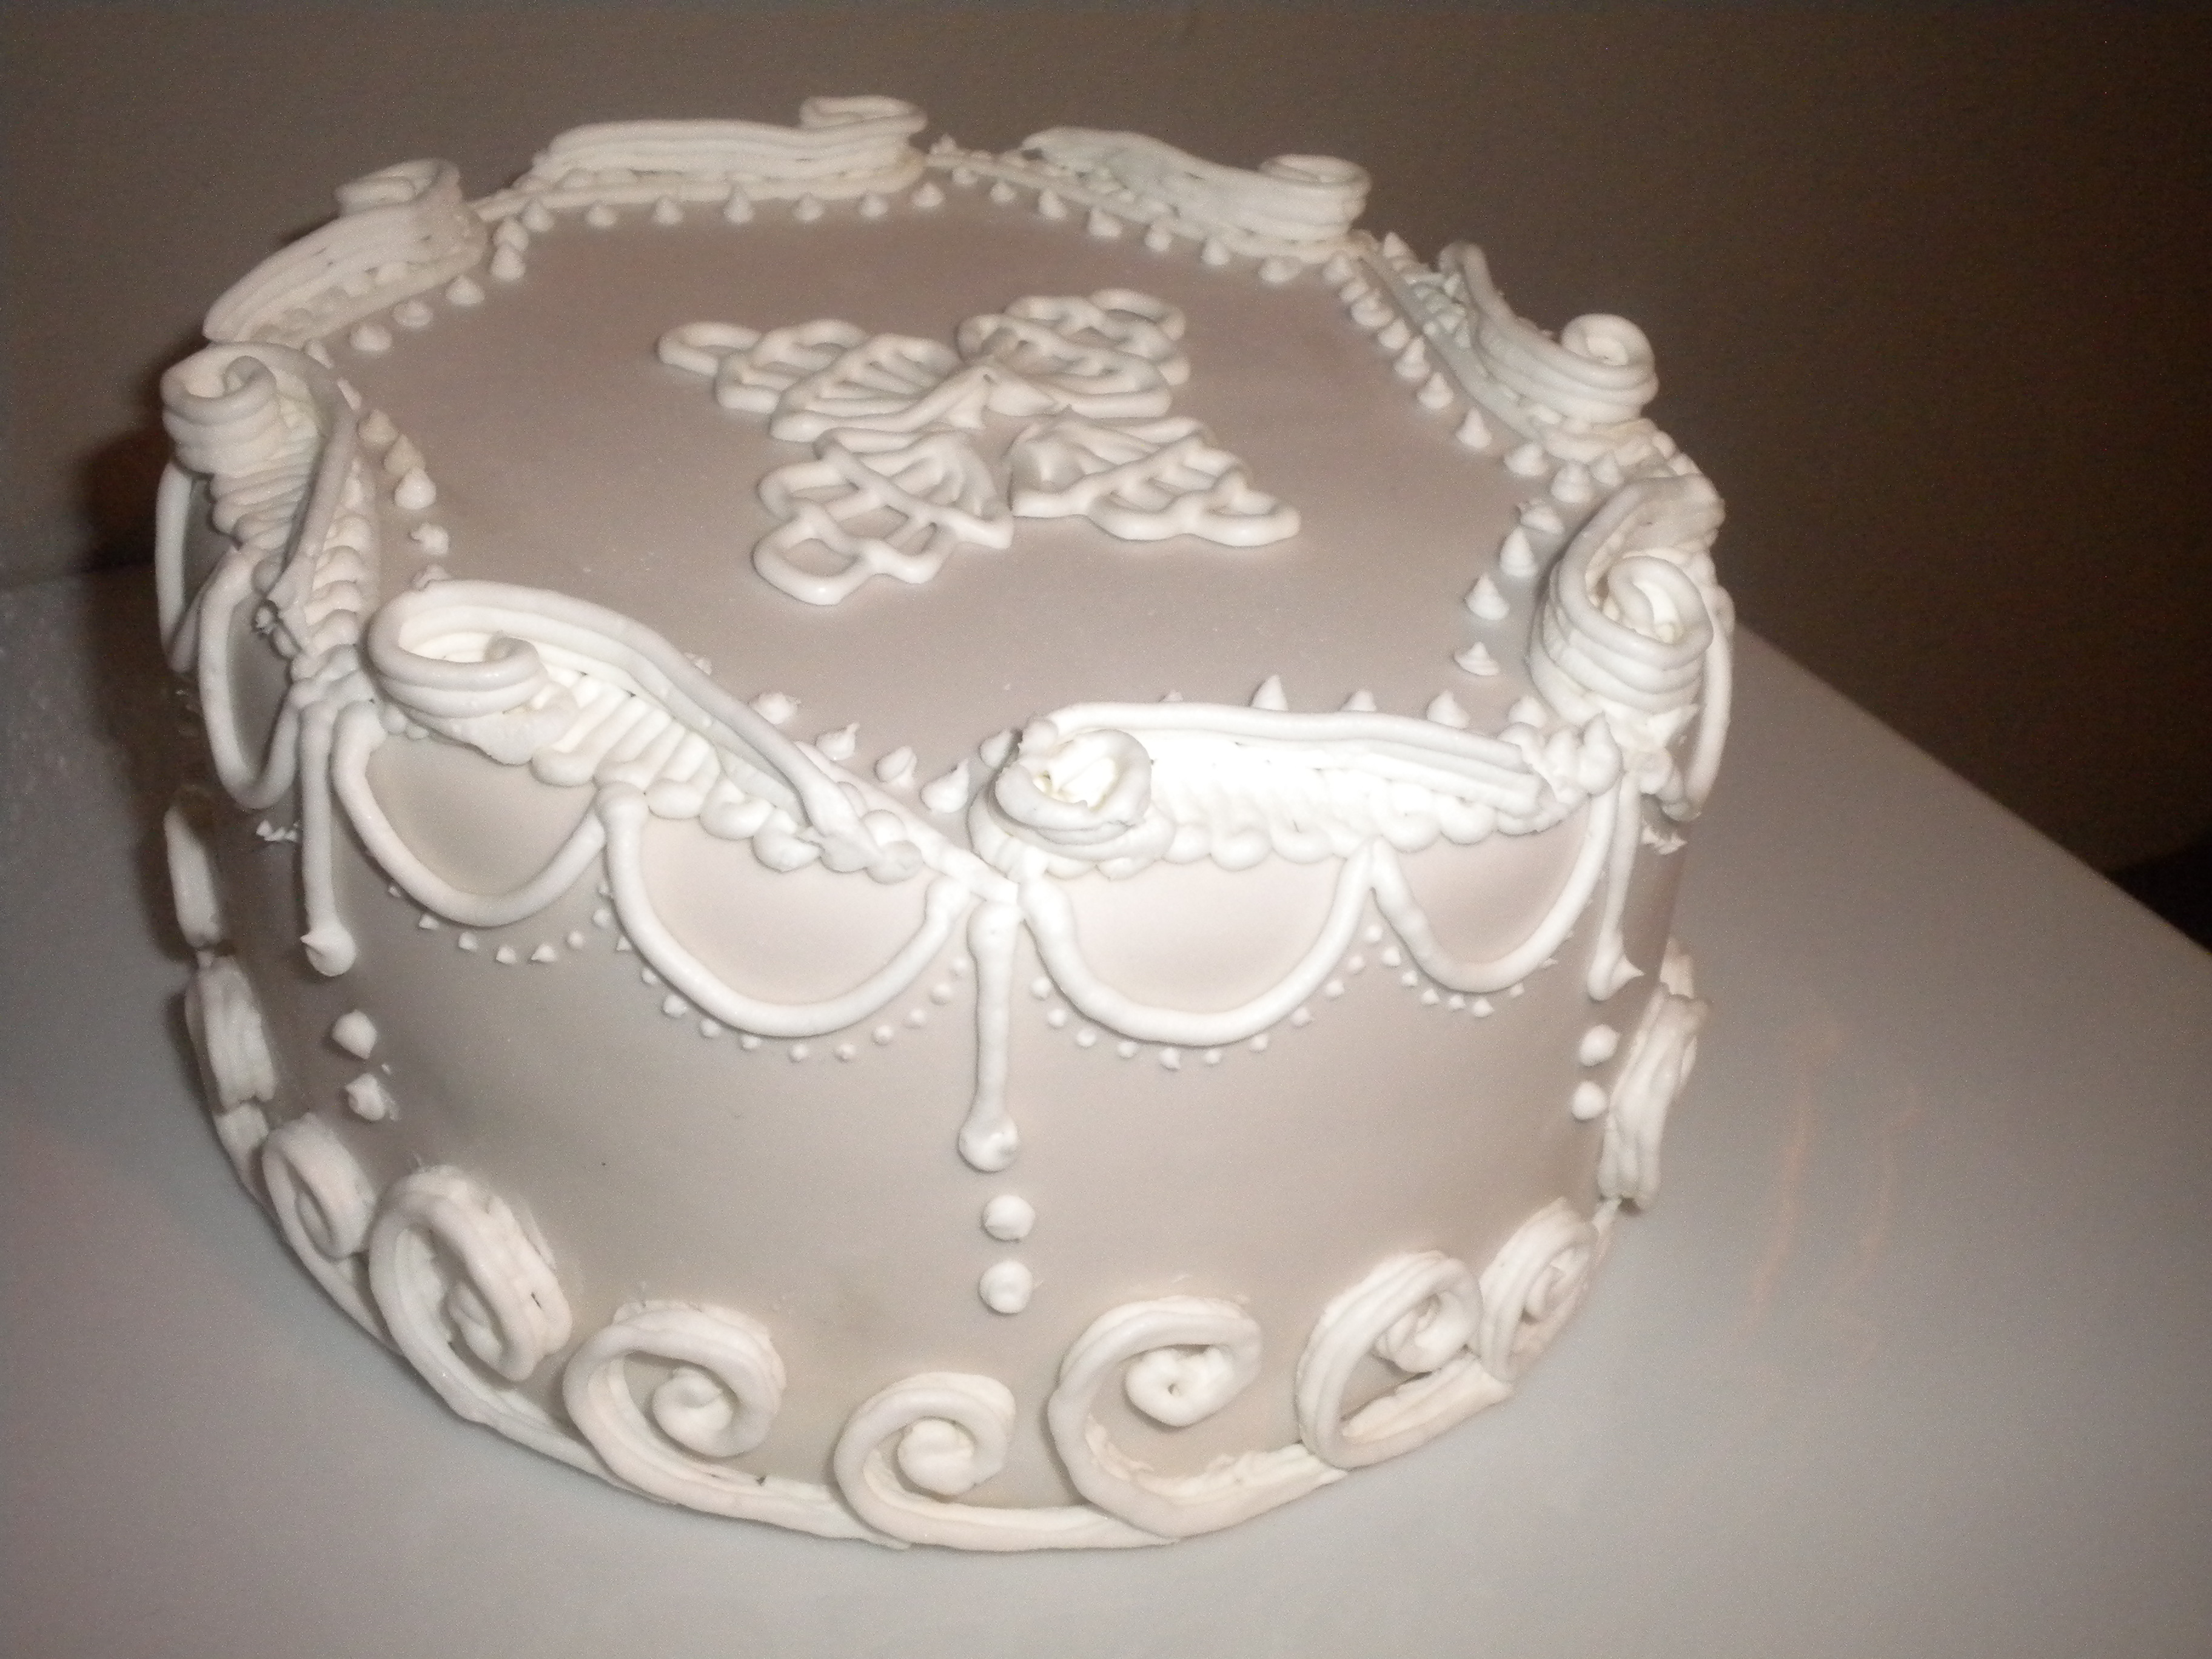 decorating wedding cakes with royal icing 11 royal frosting decorations cakes photo cake 13416